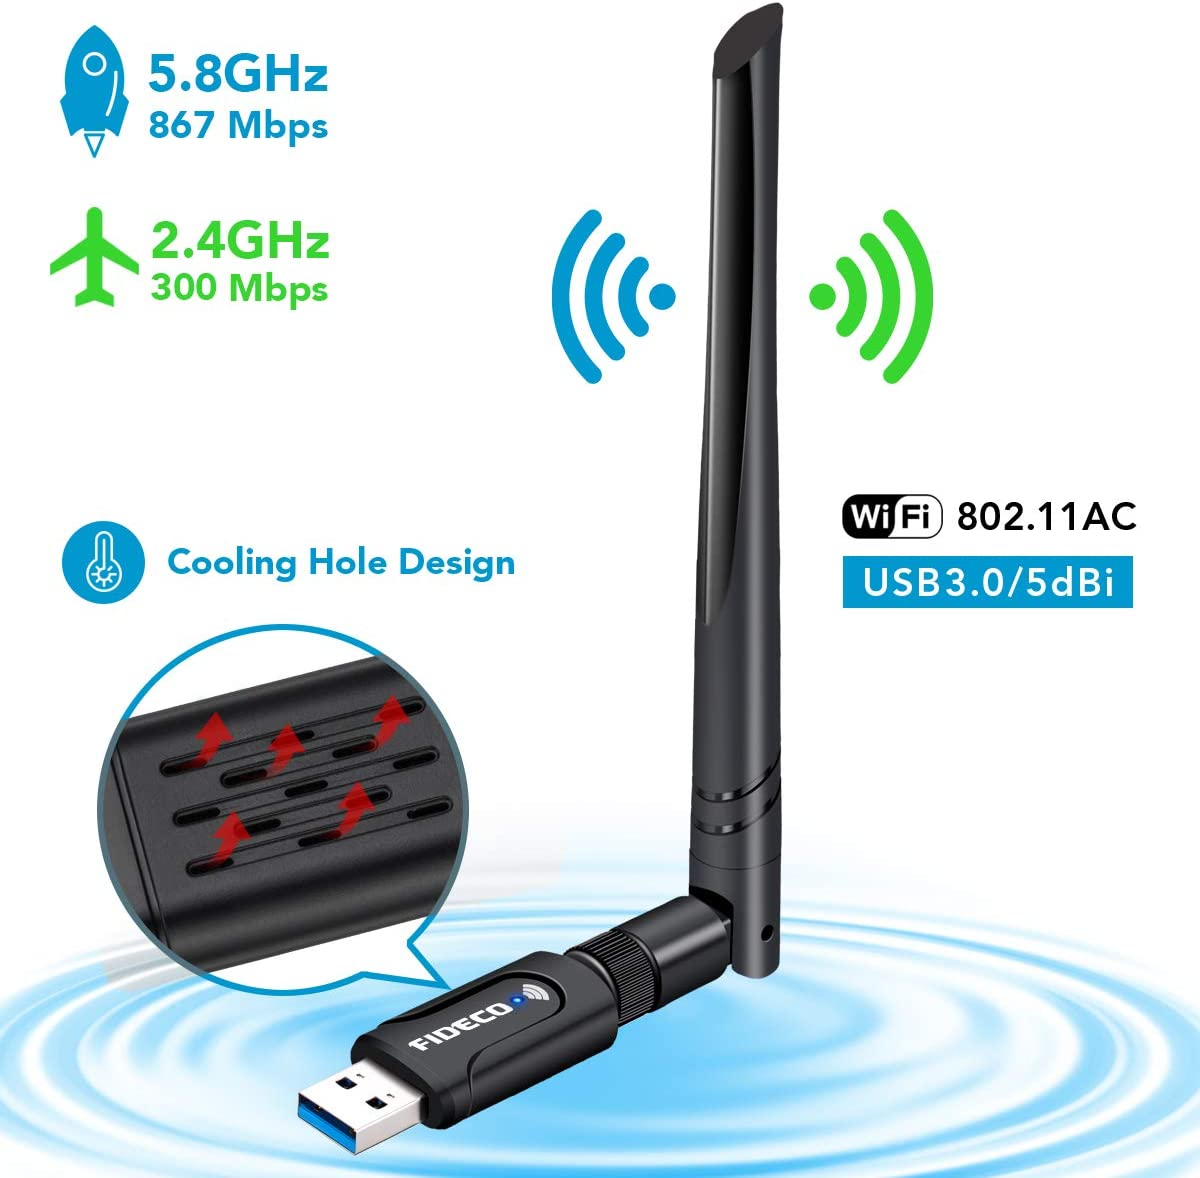 FIDECO USB 3.0 WiFi Adapter WiFi Dongle 1200Mbps 802.11 ac Wireless Network Adapter with Dual Band 2.42GHz/5.8GHz 5dBi High Gain Antenna for PC Laptop Desktop Windows XP/Vista/7/8/10, Linx2.6X, Mac